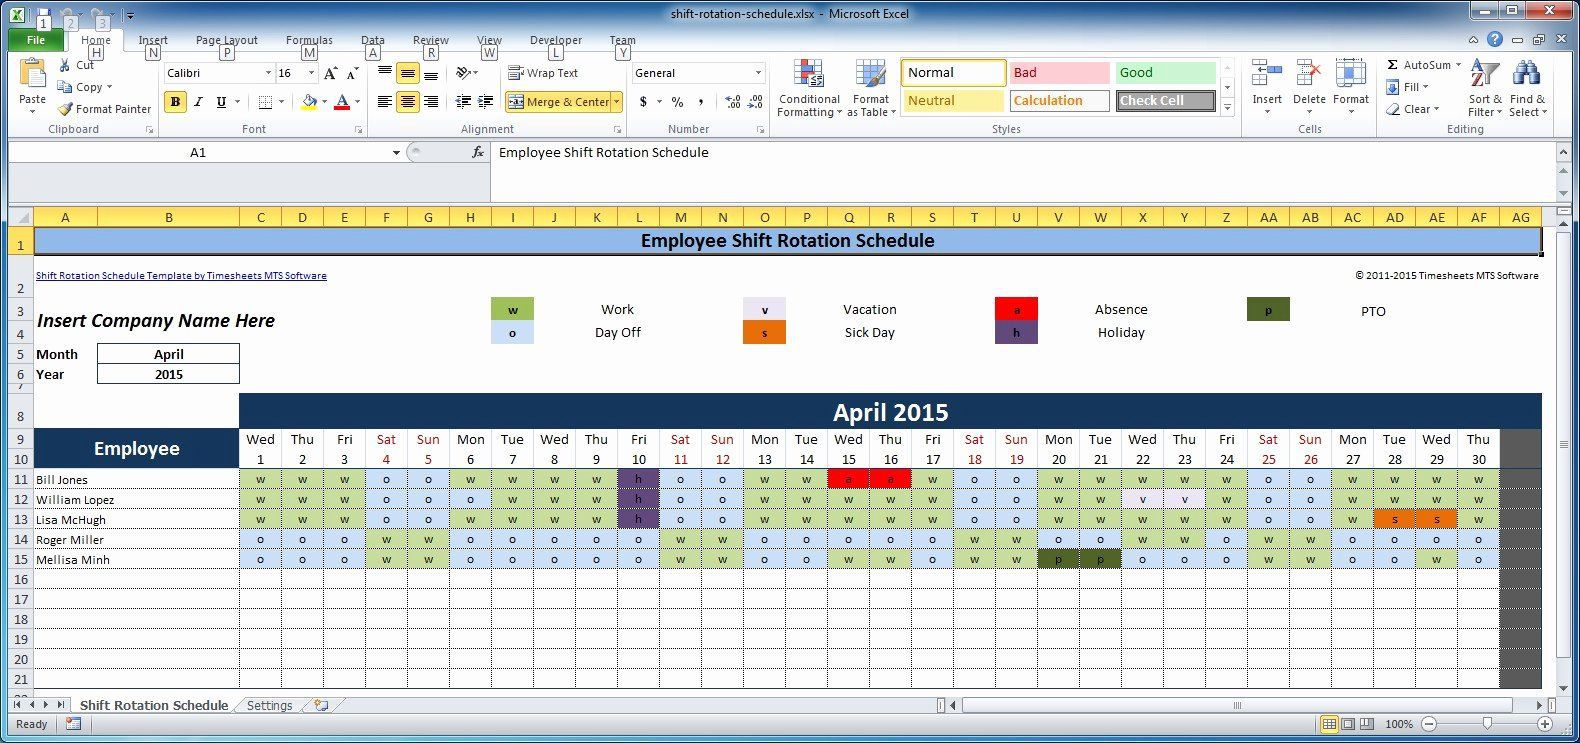 007 Awful Work Schedule Calendar Template Excel Picture Full